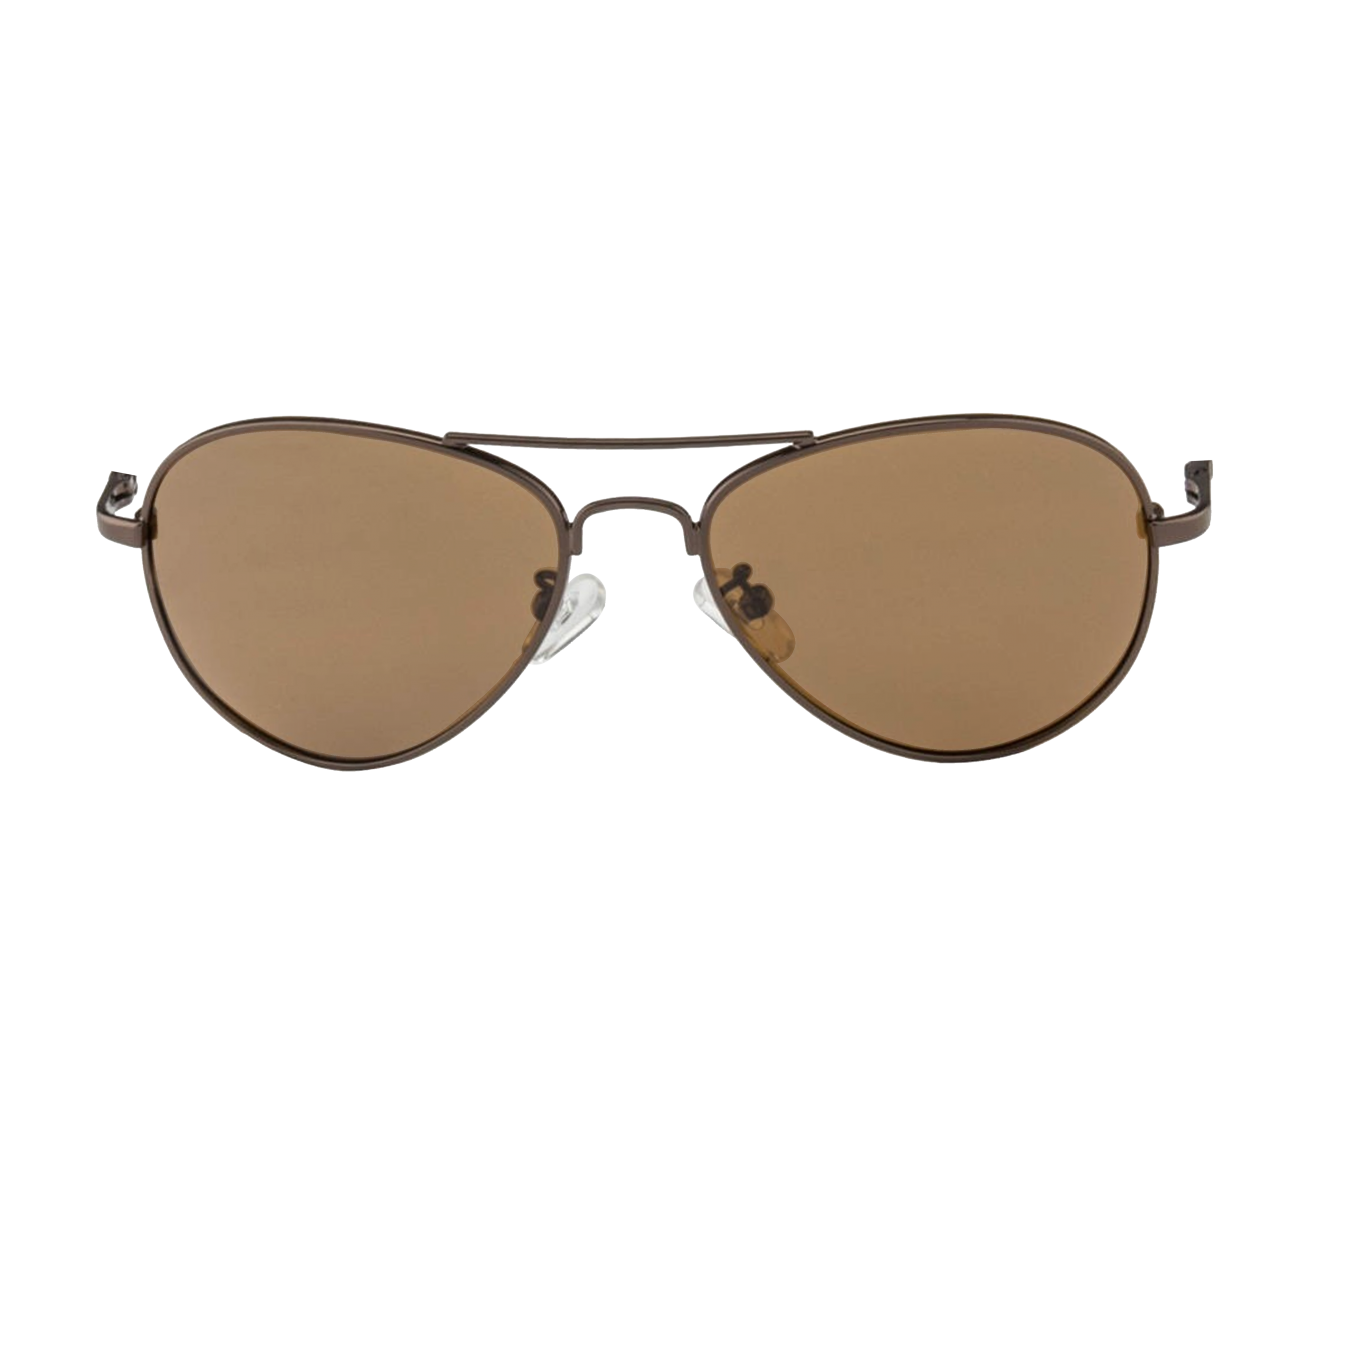 Images Aviator Sunglasses Png